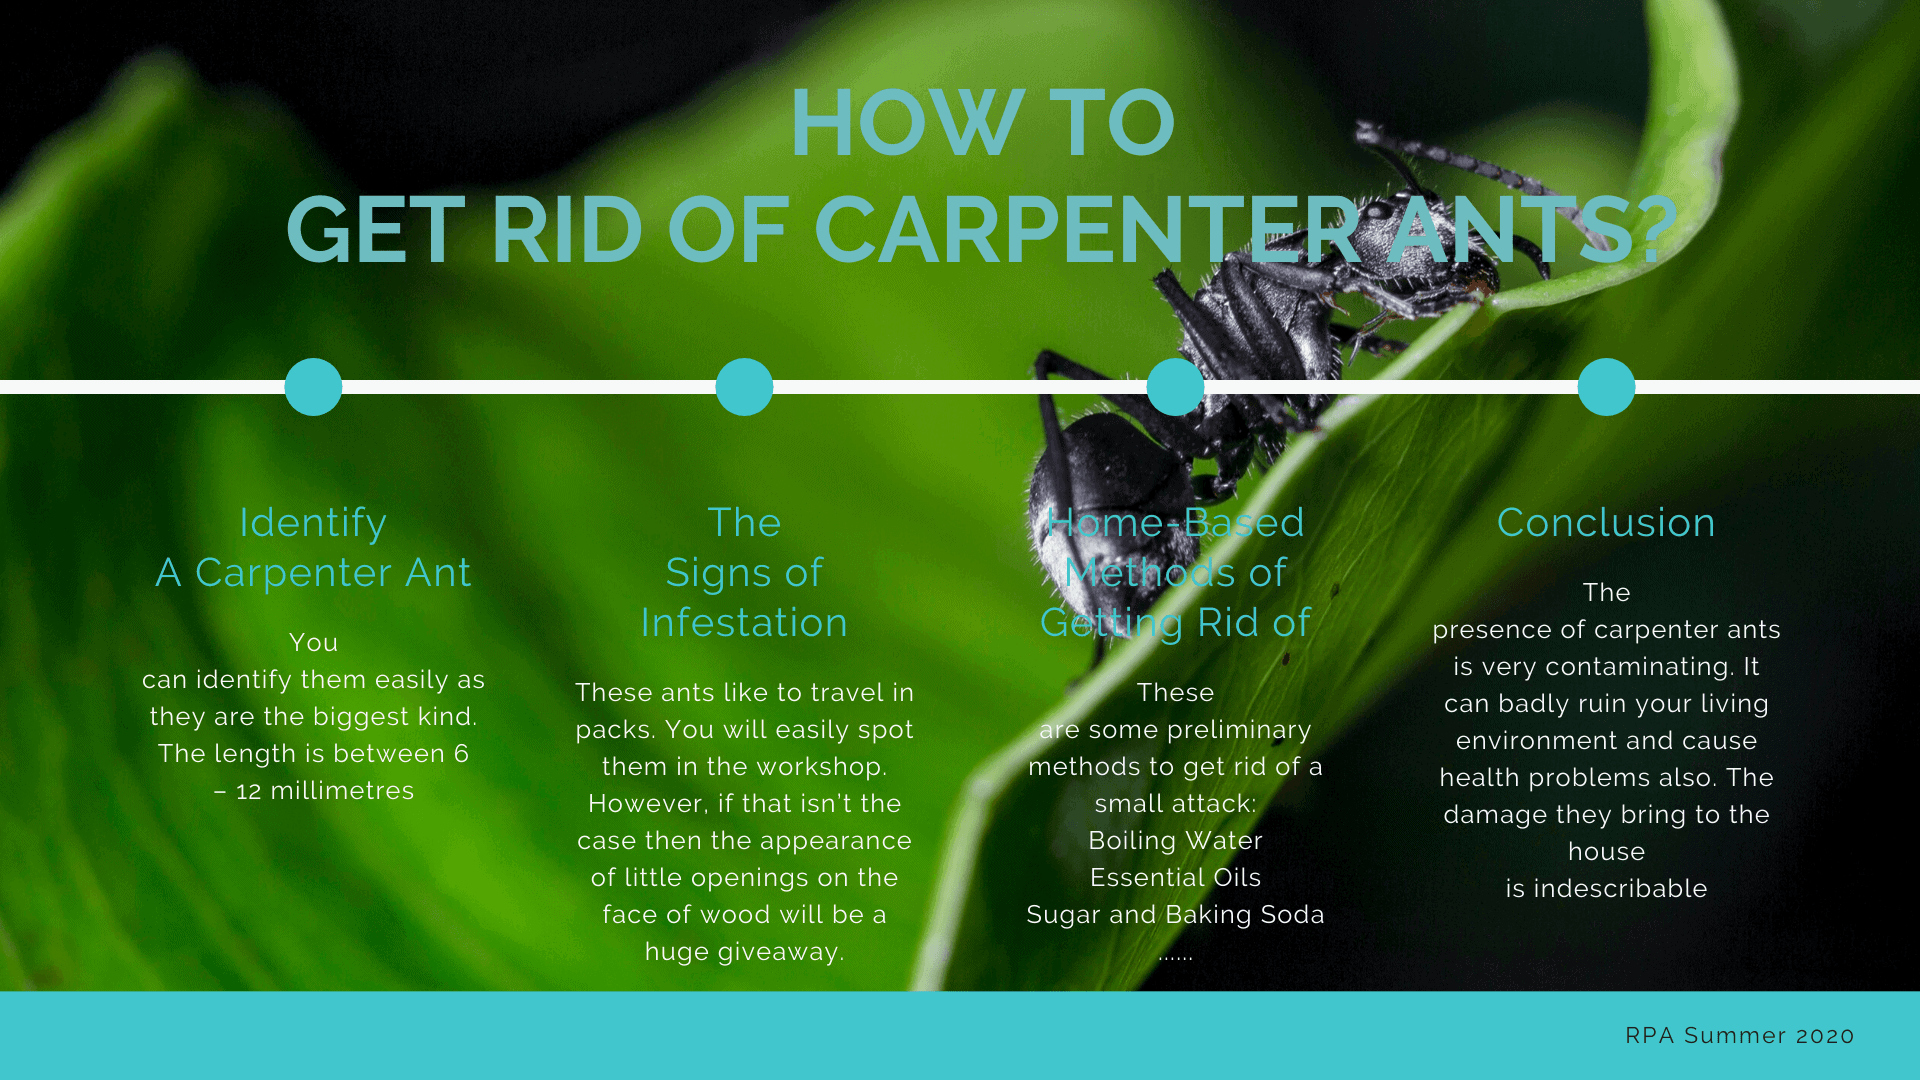 how to get red of carpenter ants